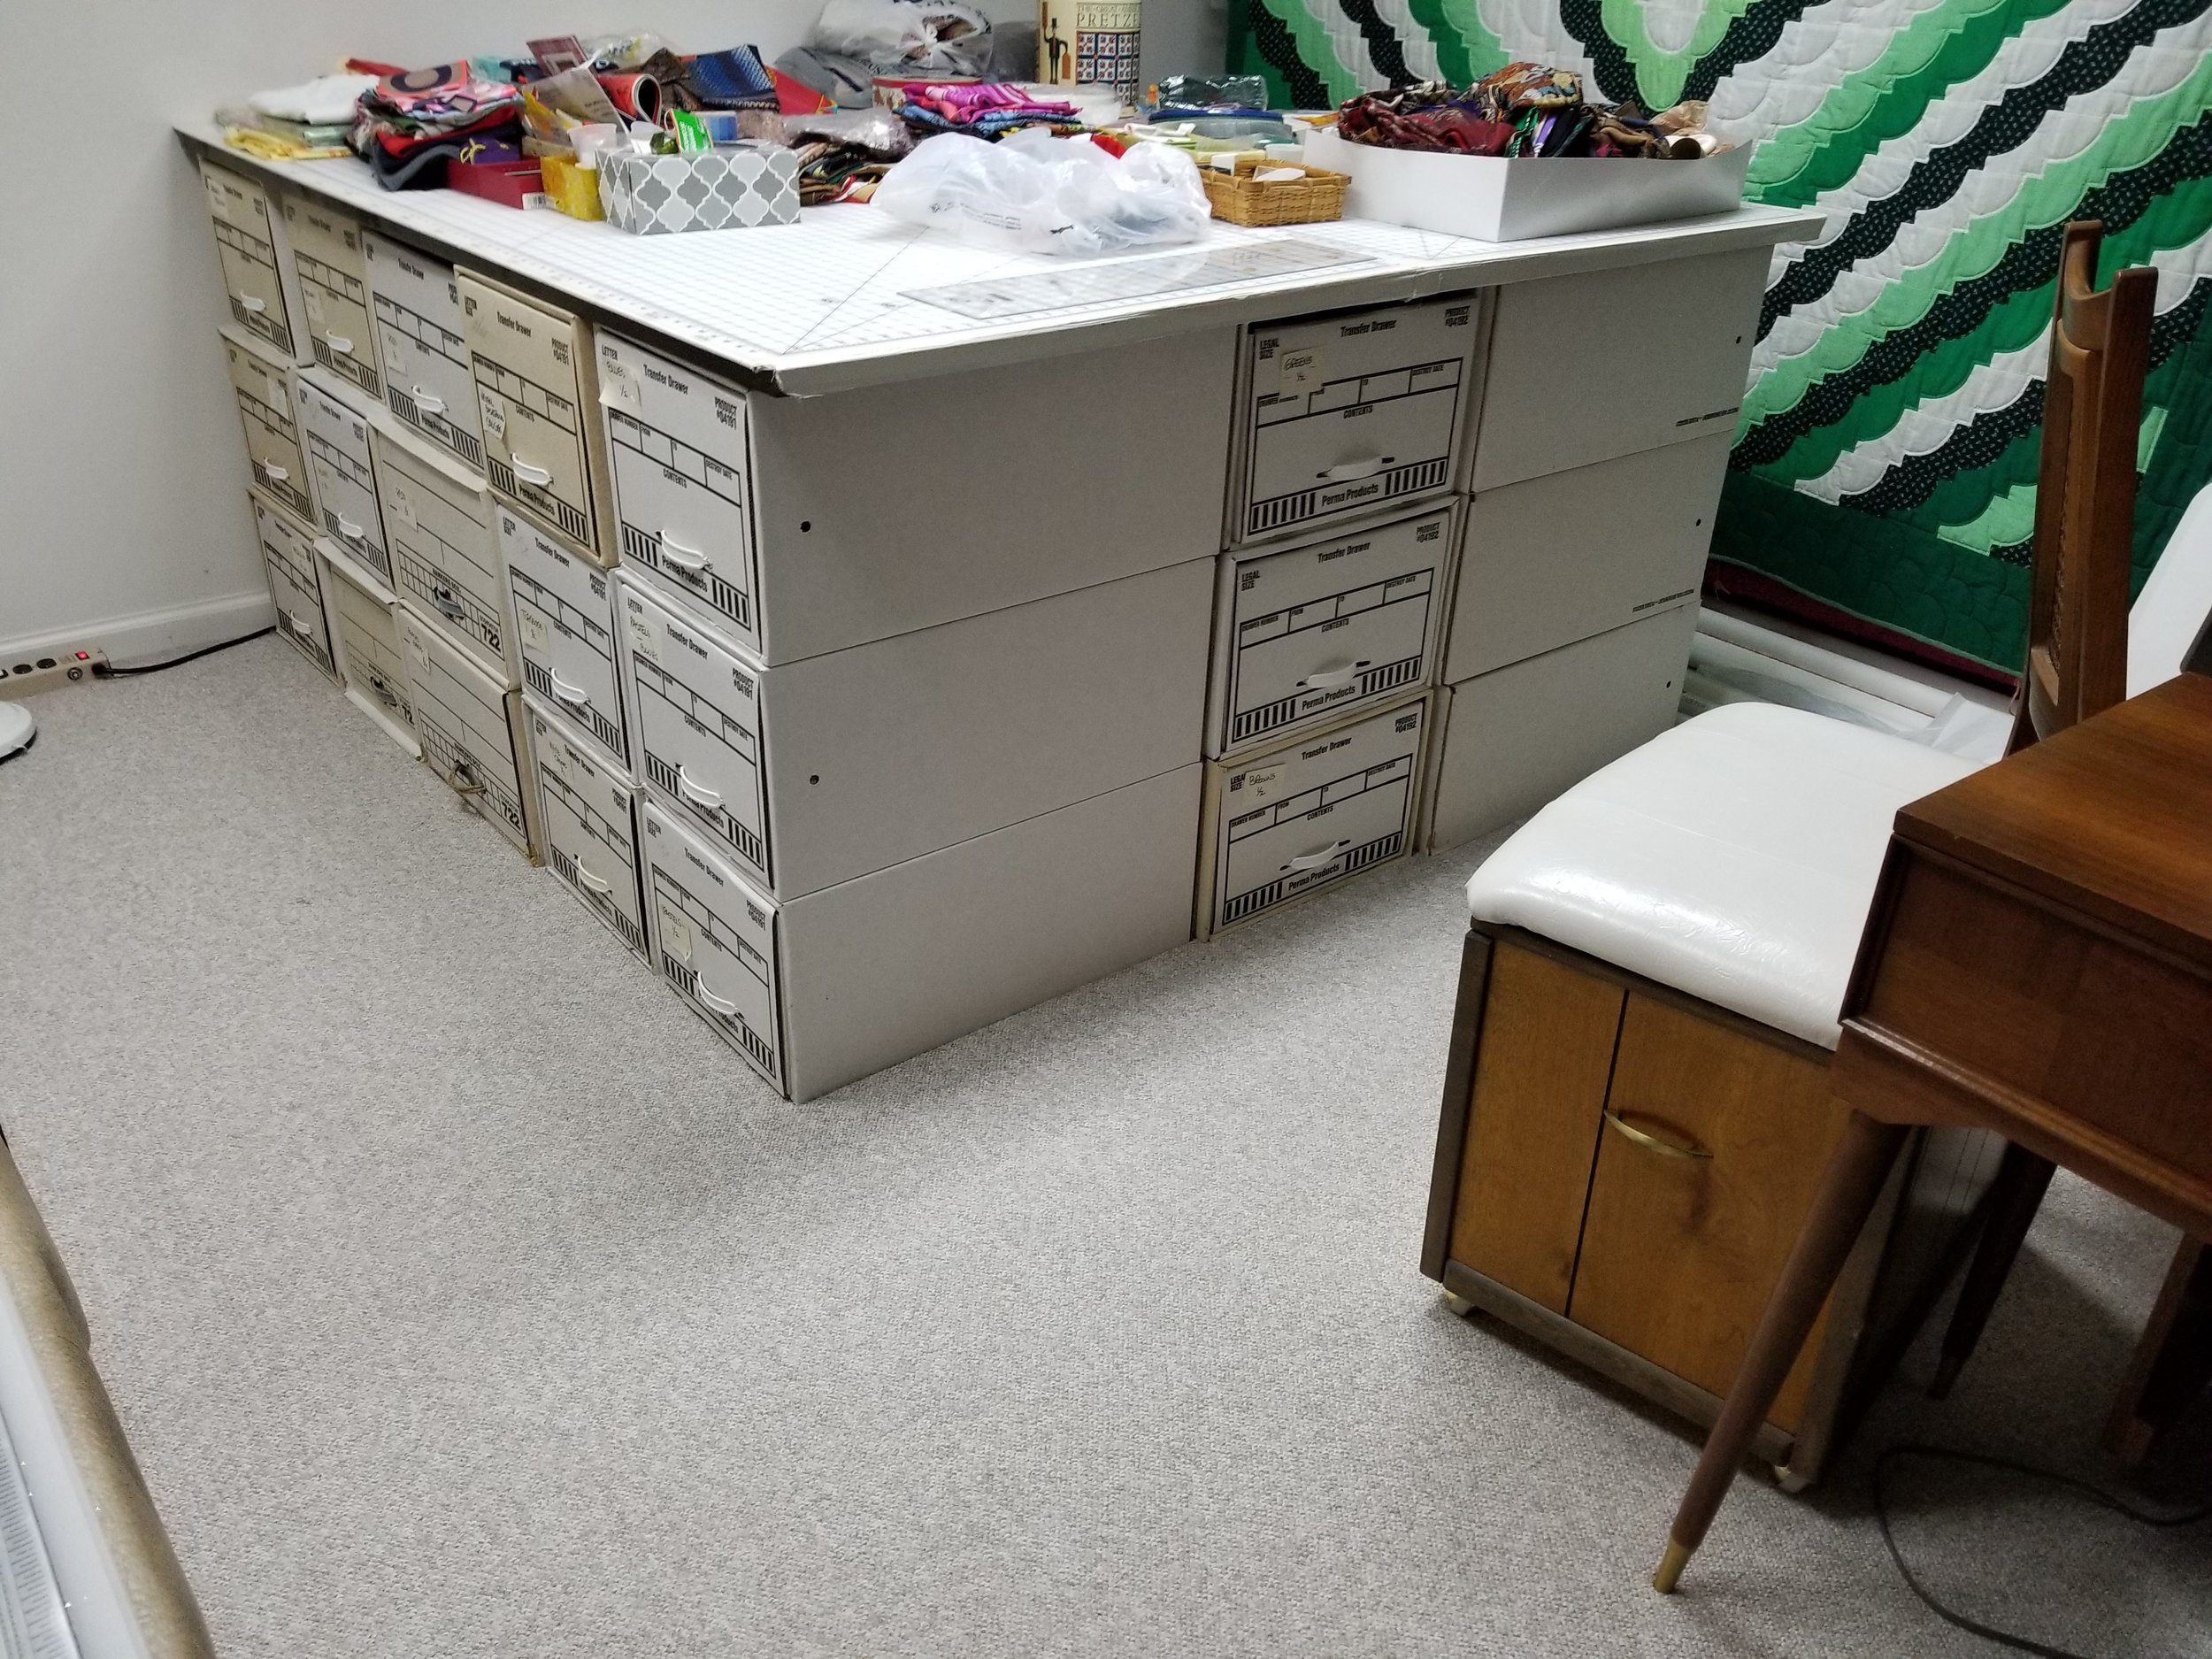 File Box Storage/Cutting Table